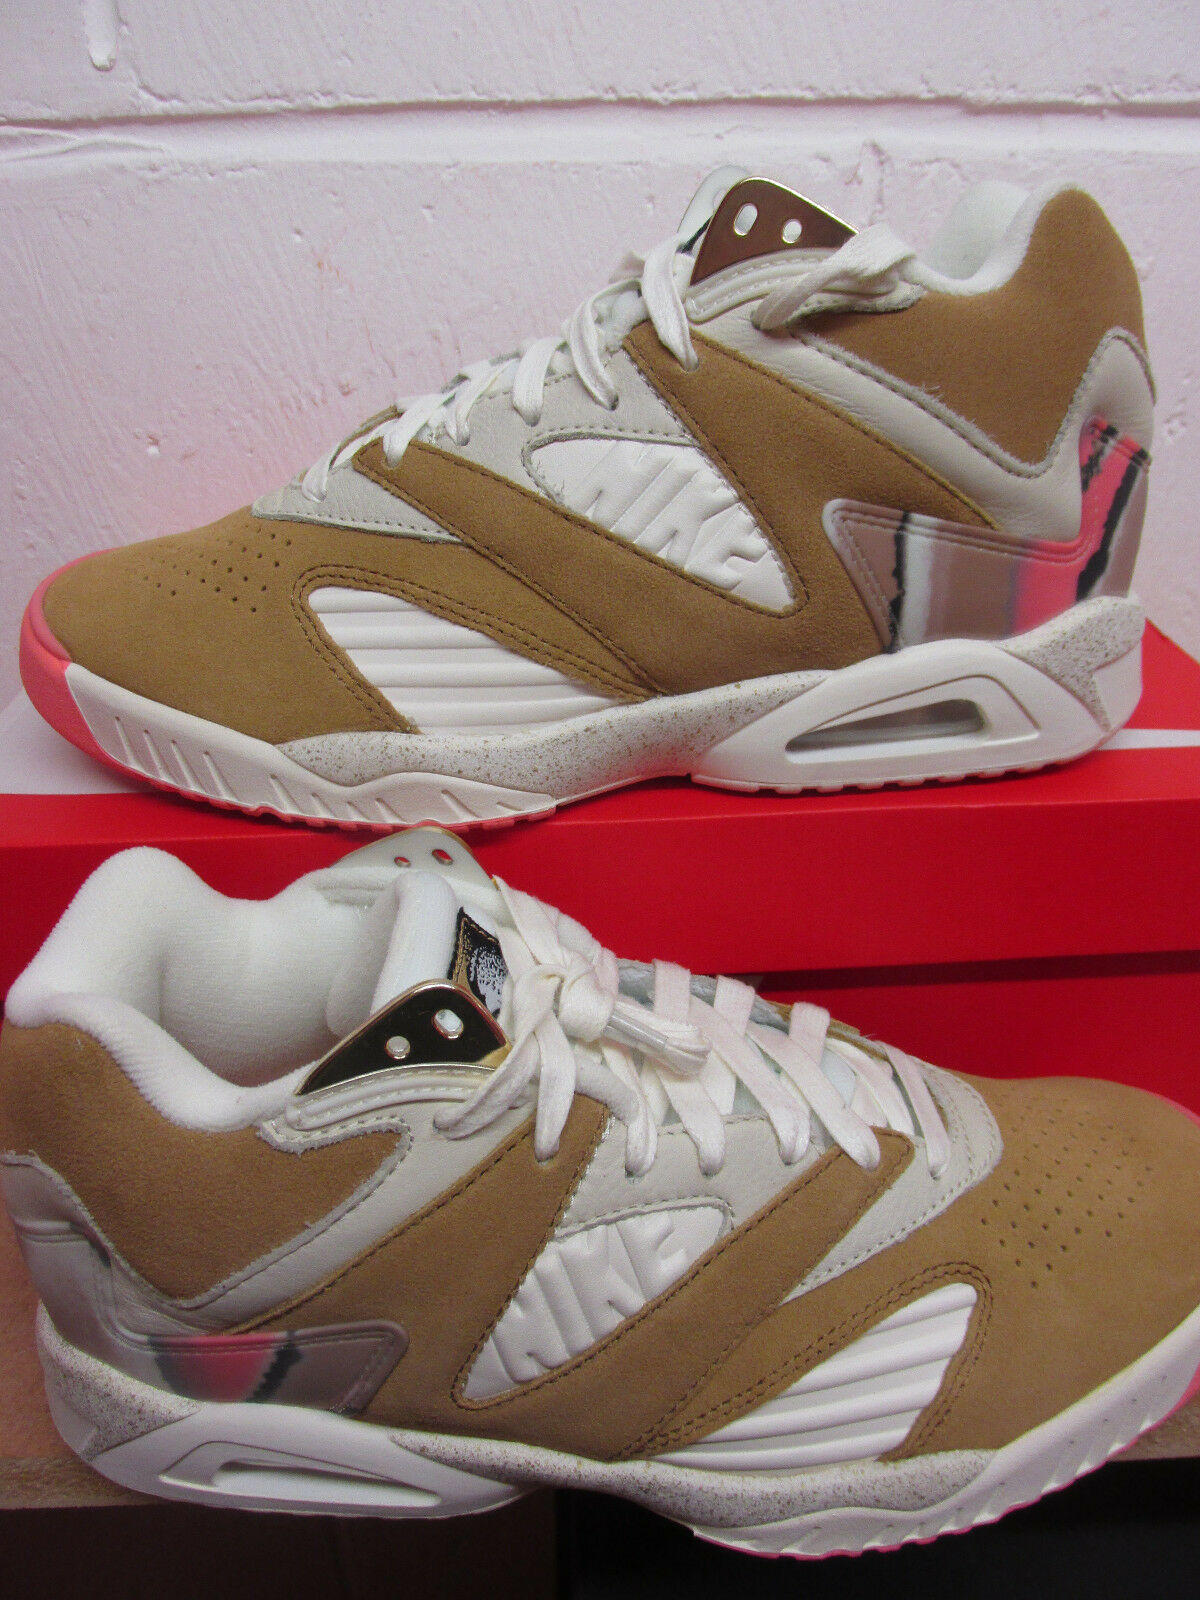 Nike Air Tech Challange Hi IV Premium  Uomo Hi Challange Top Trainers 852622 201 Sneakers Schuhe 5f4257